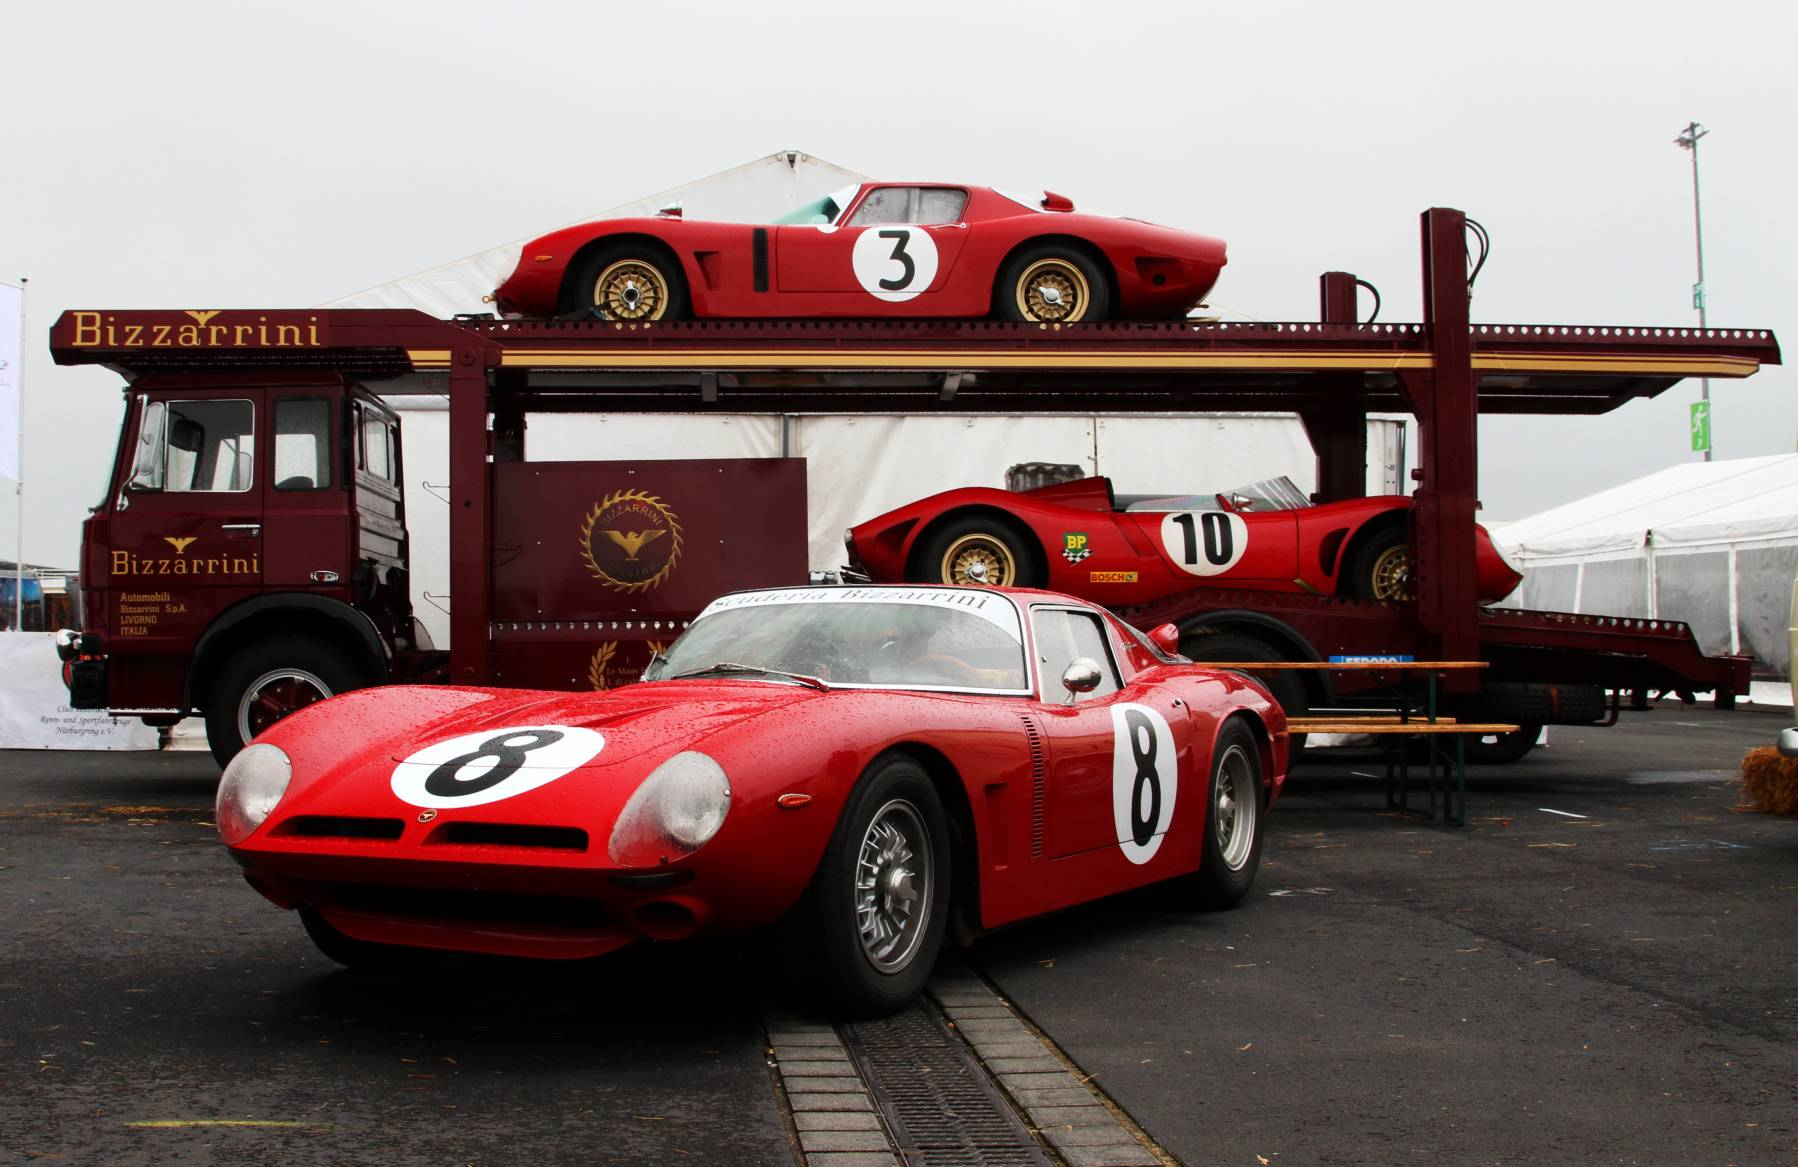 Bizzarrini, Renntransporter